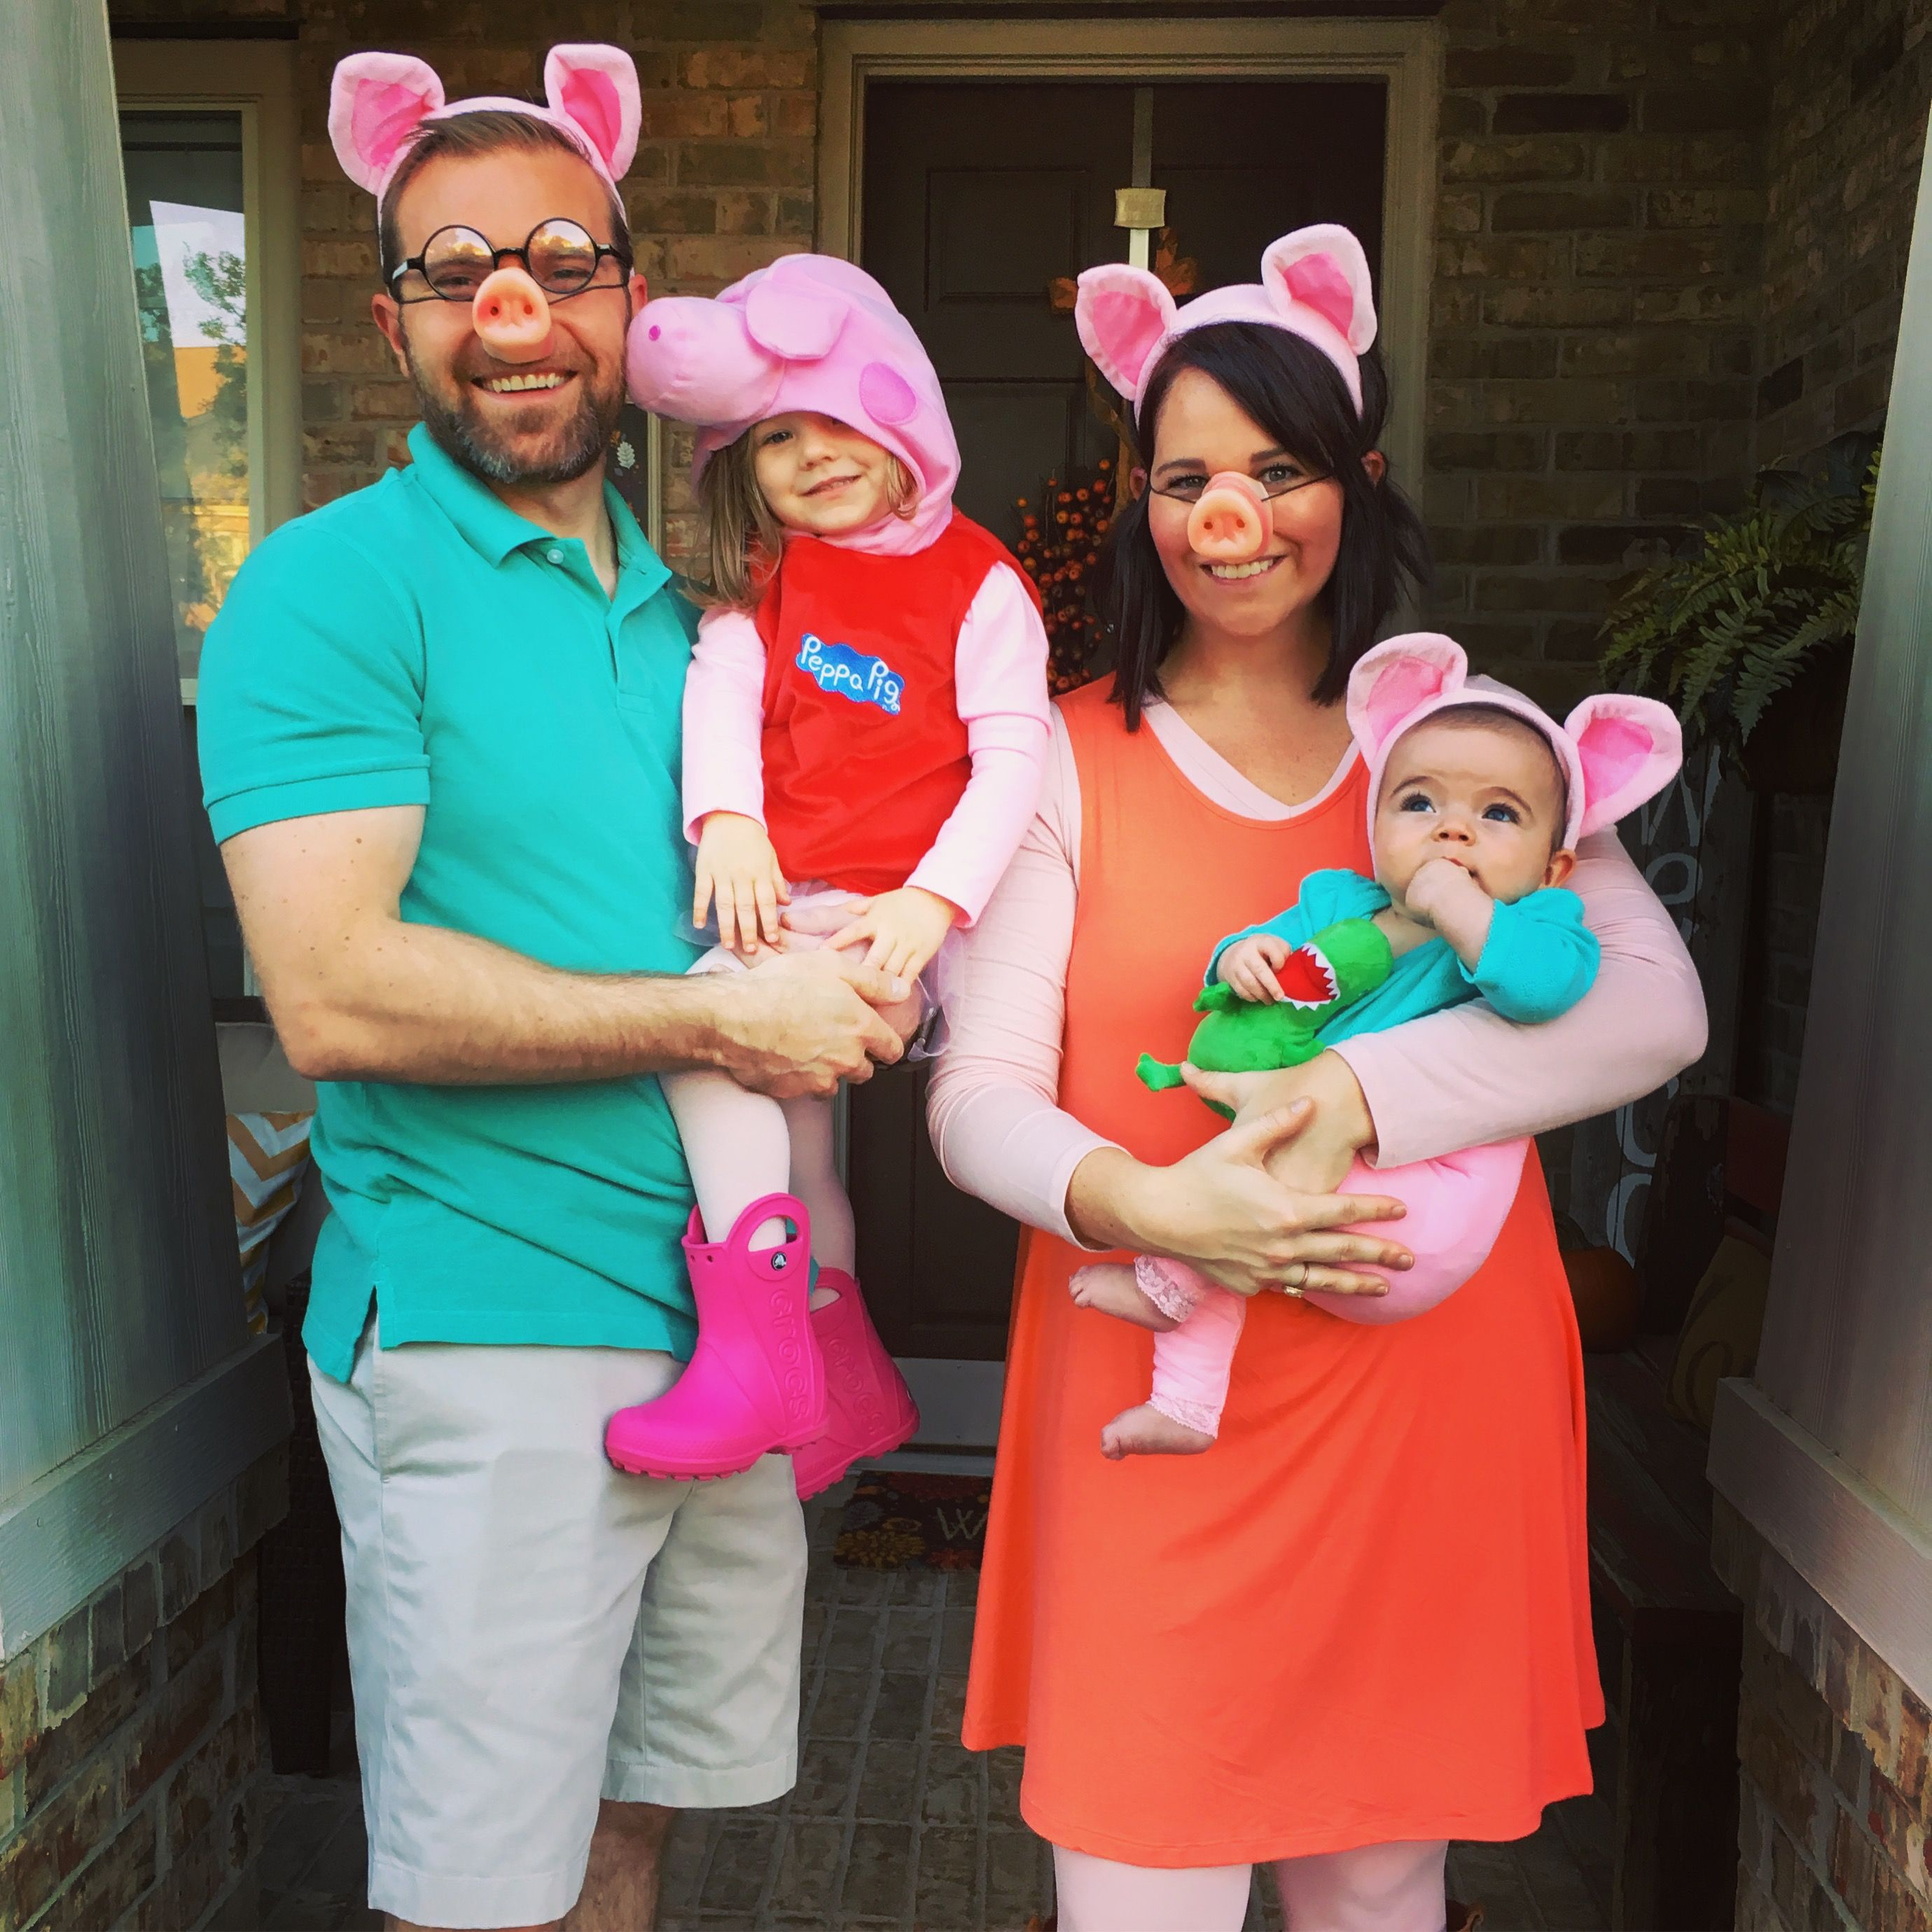 Peppa pig family halloween costume claire caroline peppa pig family halloween costume solutioingenieria Images